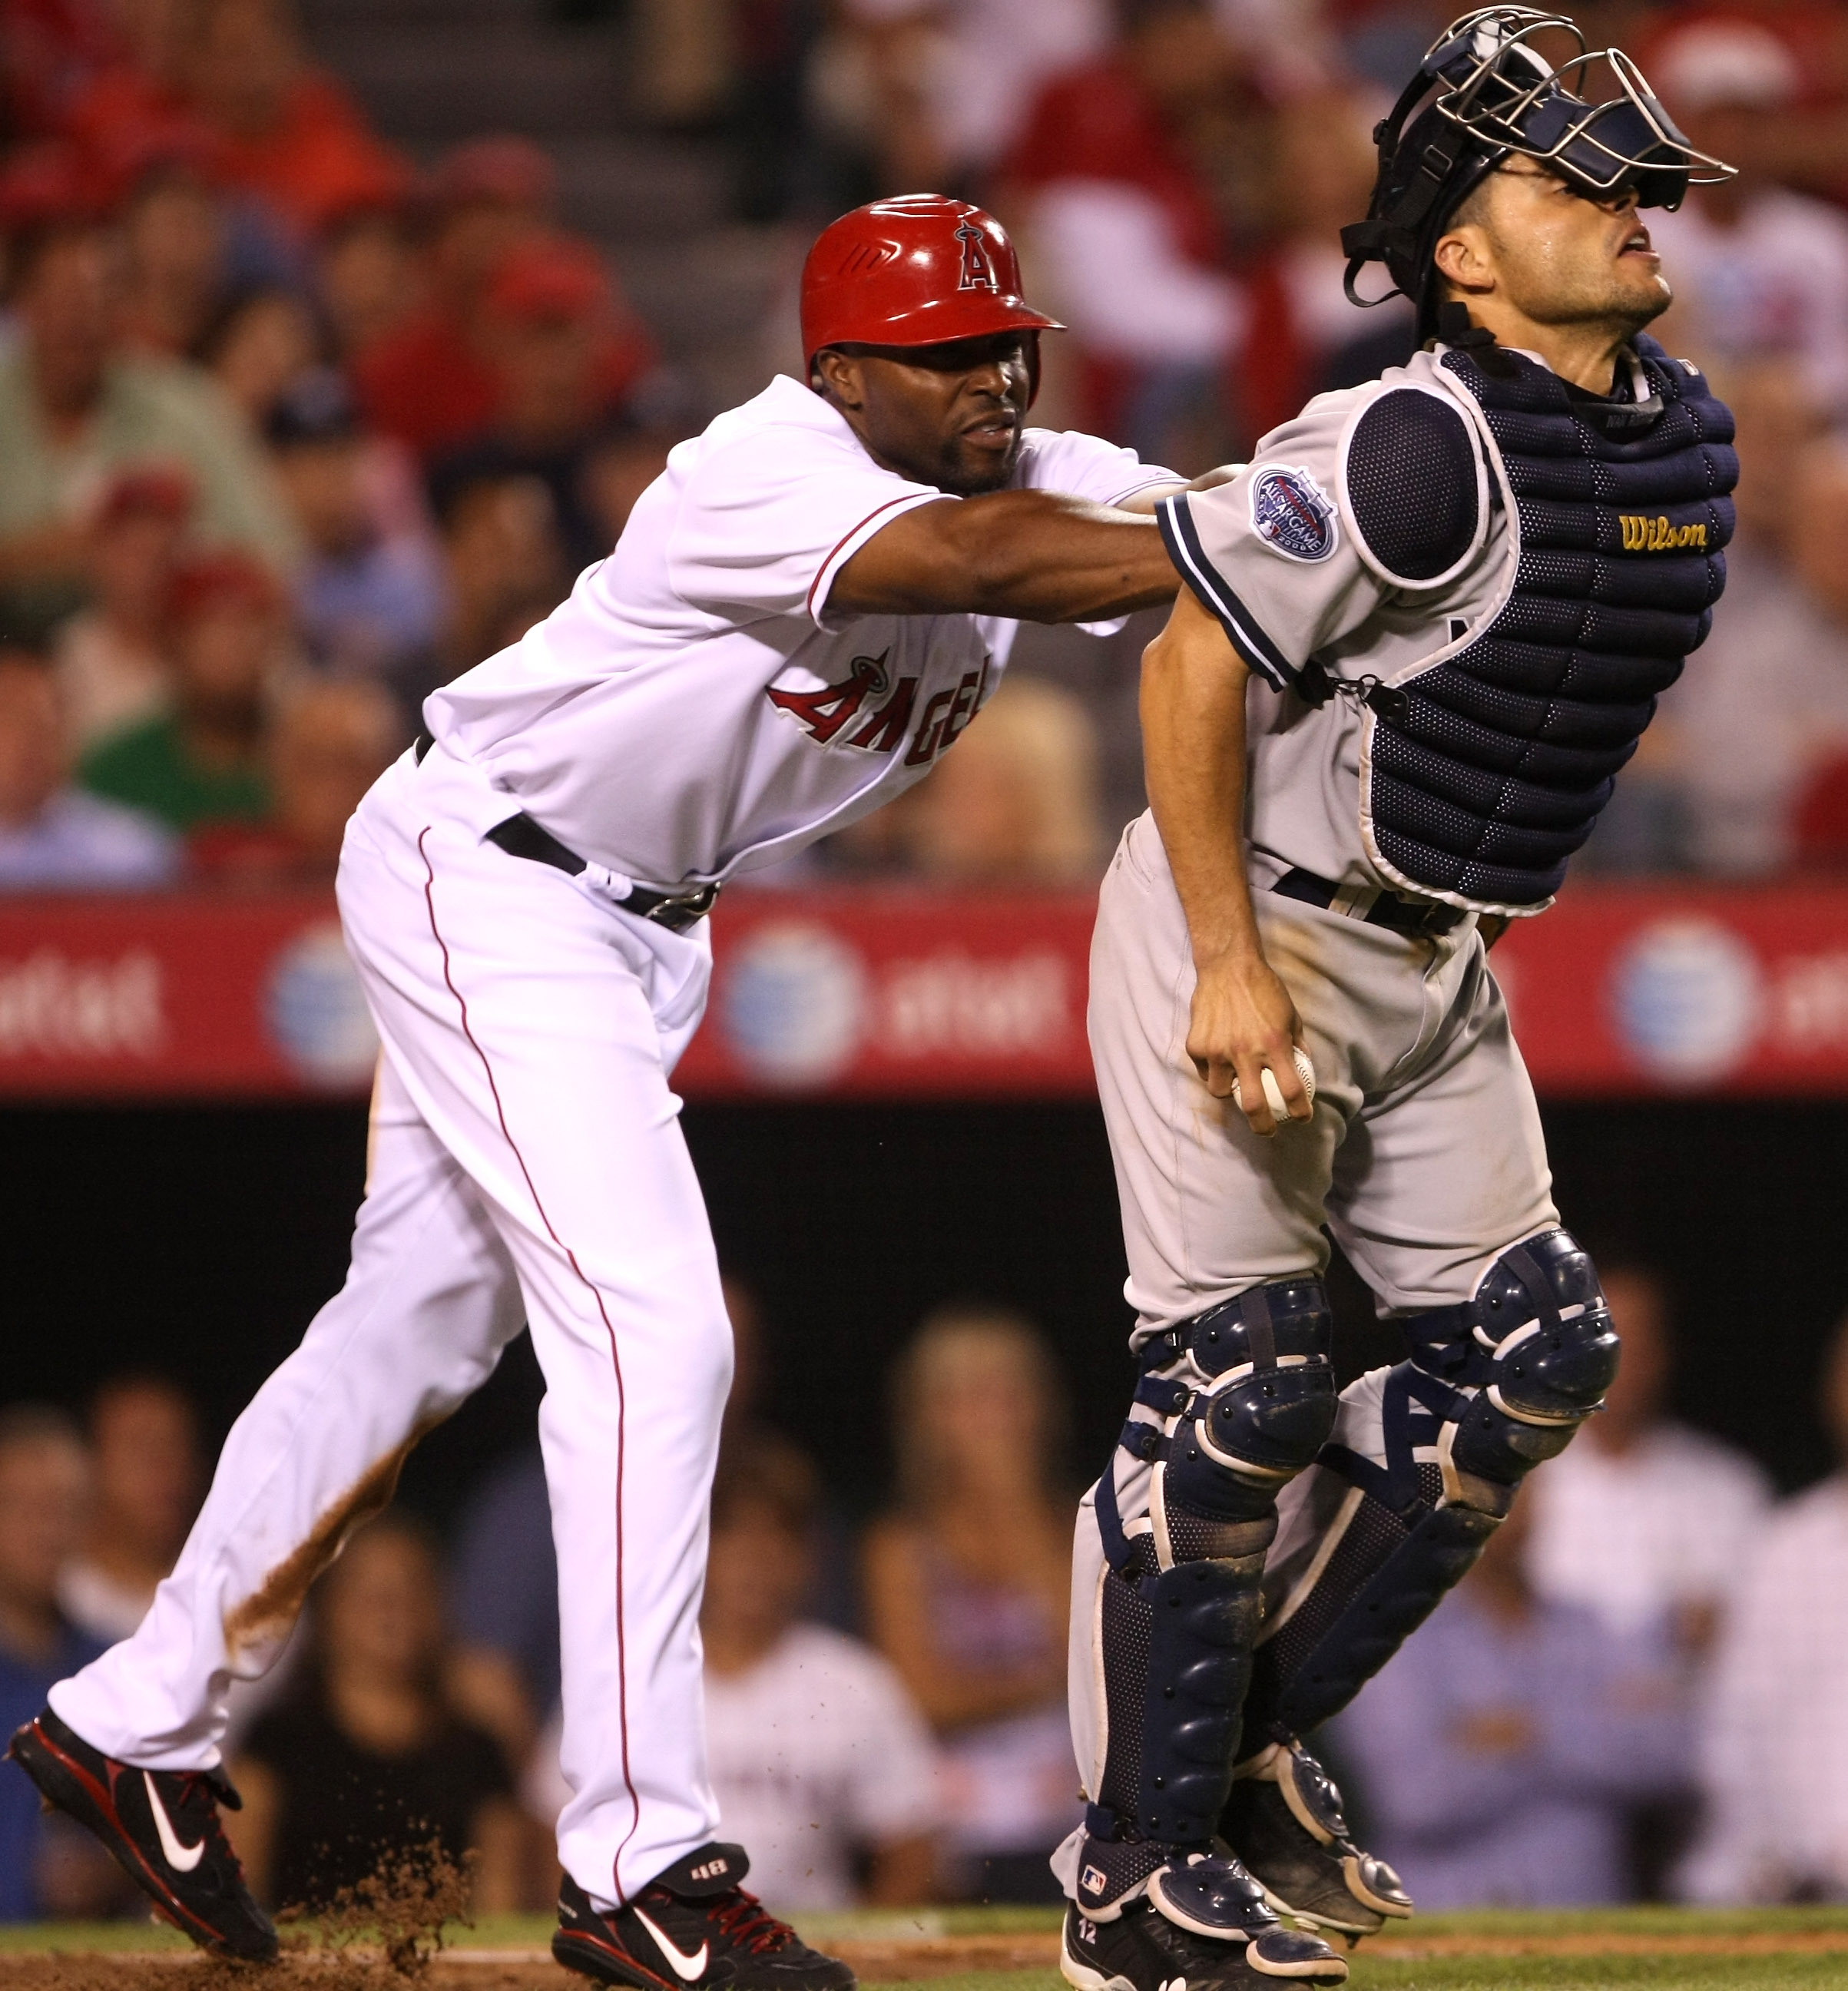 ANAHEIM, CA - SEPTEMBER 08:  Torii Hunter #48 of the Los Angeles Angels of Anaheim pushes catcher Ivan Rodriguez of the New York Yankees after being tagged out on September 8, 2008 at Angel Stadium in Anaheim, California.  The action triggered a dugout cl